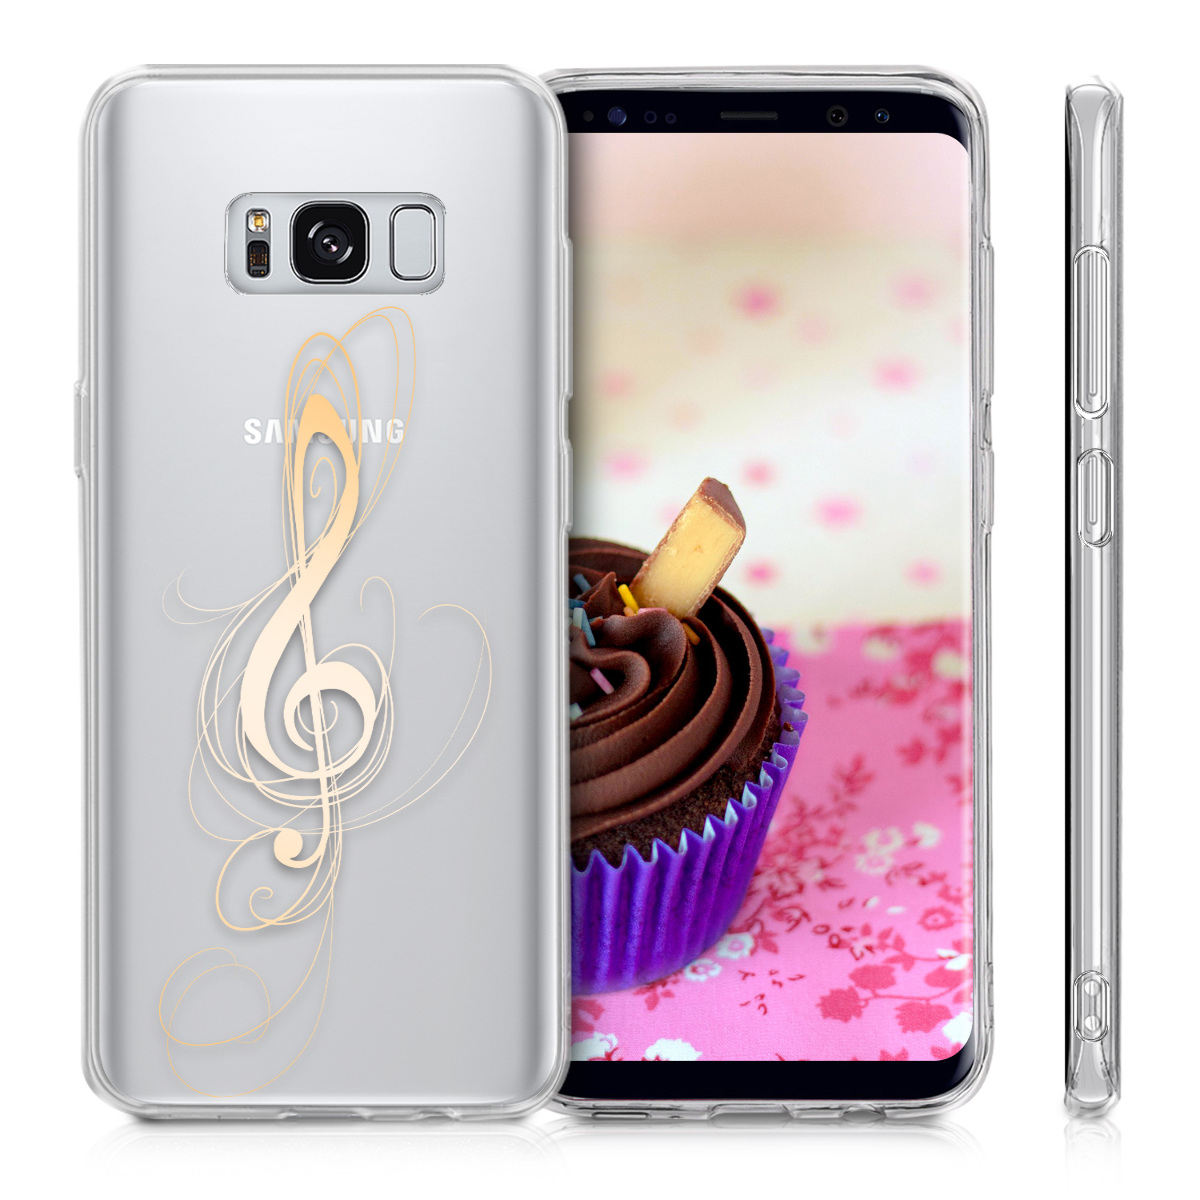 handyh lle f r samsung galaxy s8 h lle handy case cover silikon schutzh lle ebay. Black Bedroom Furniture Sets. Home Design Ideas